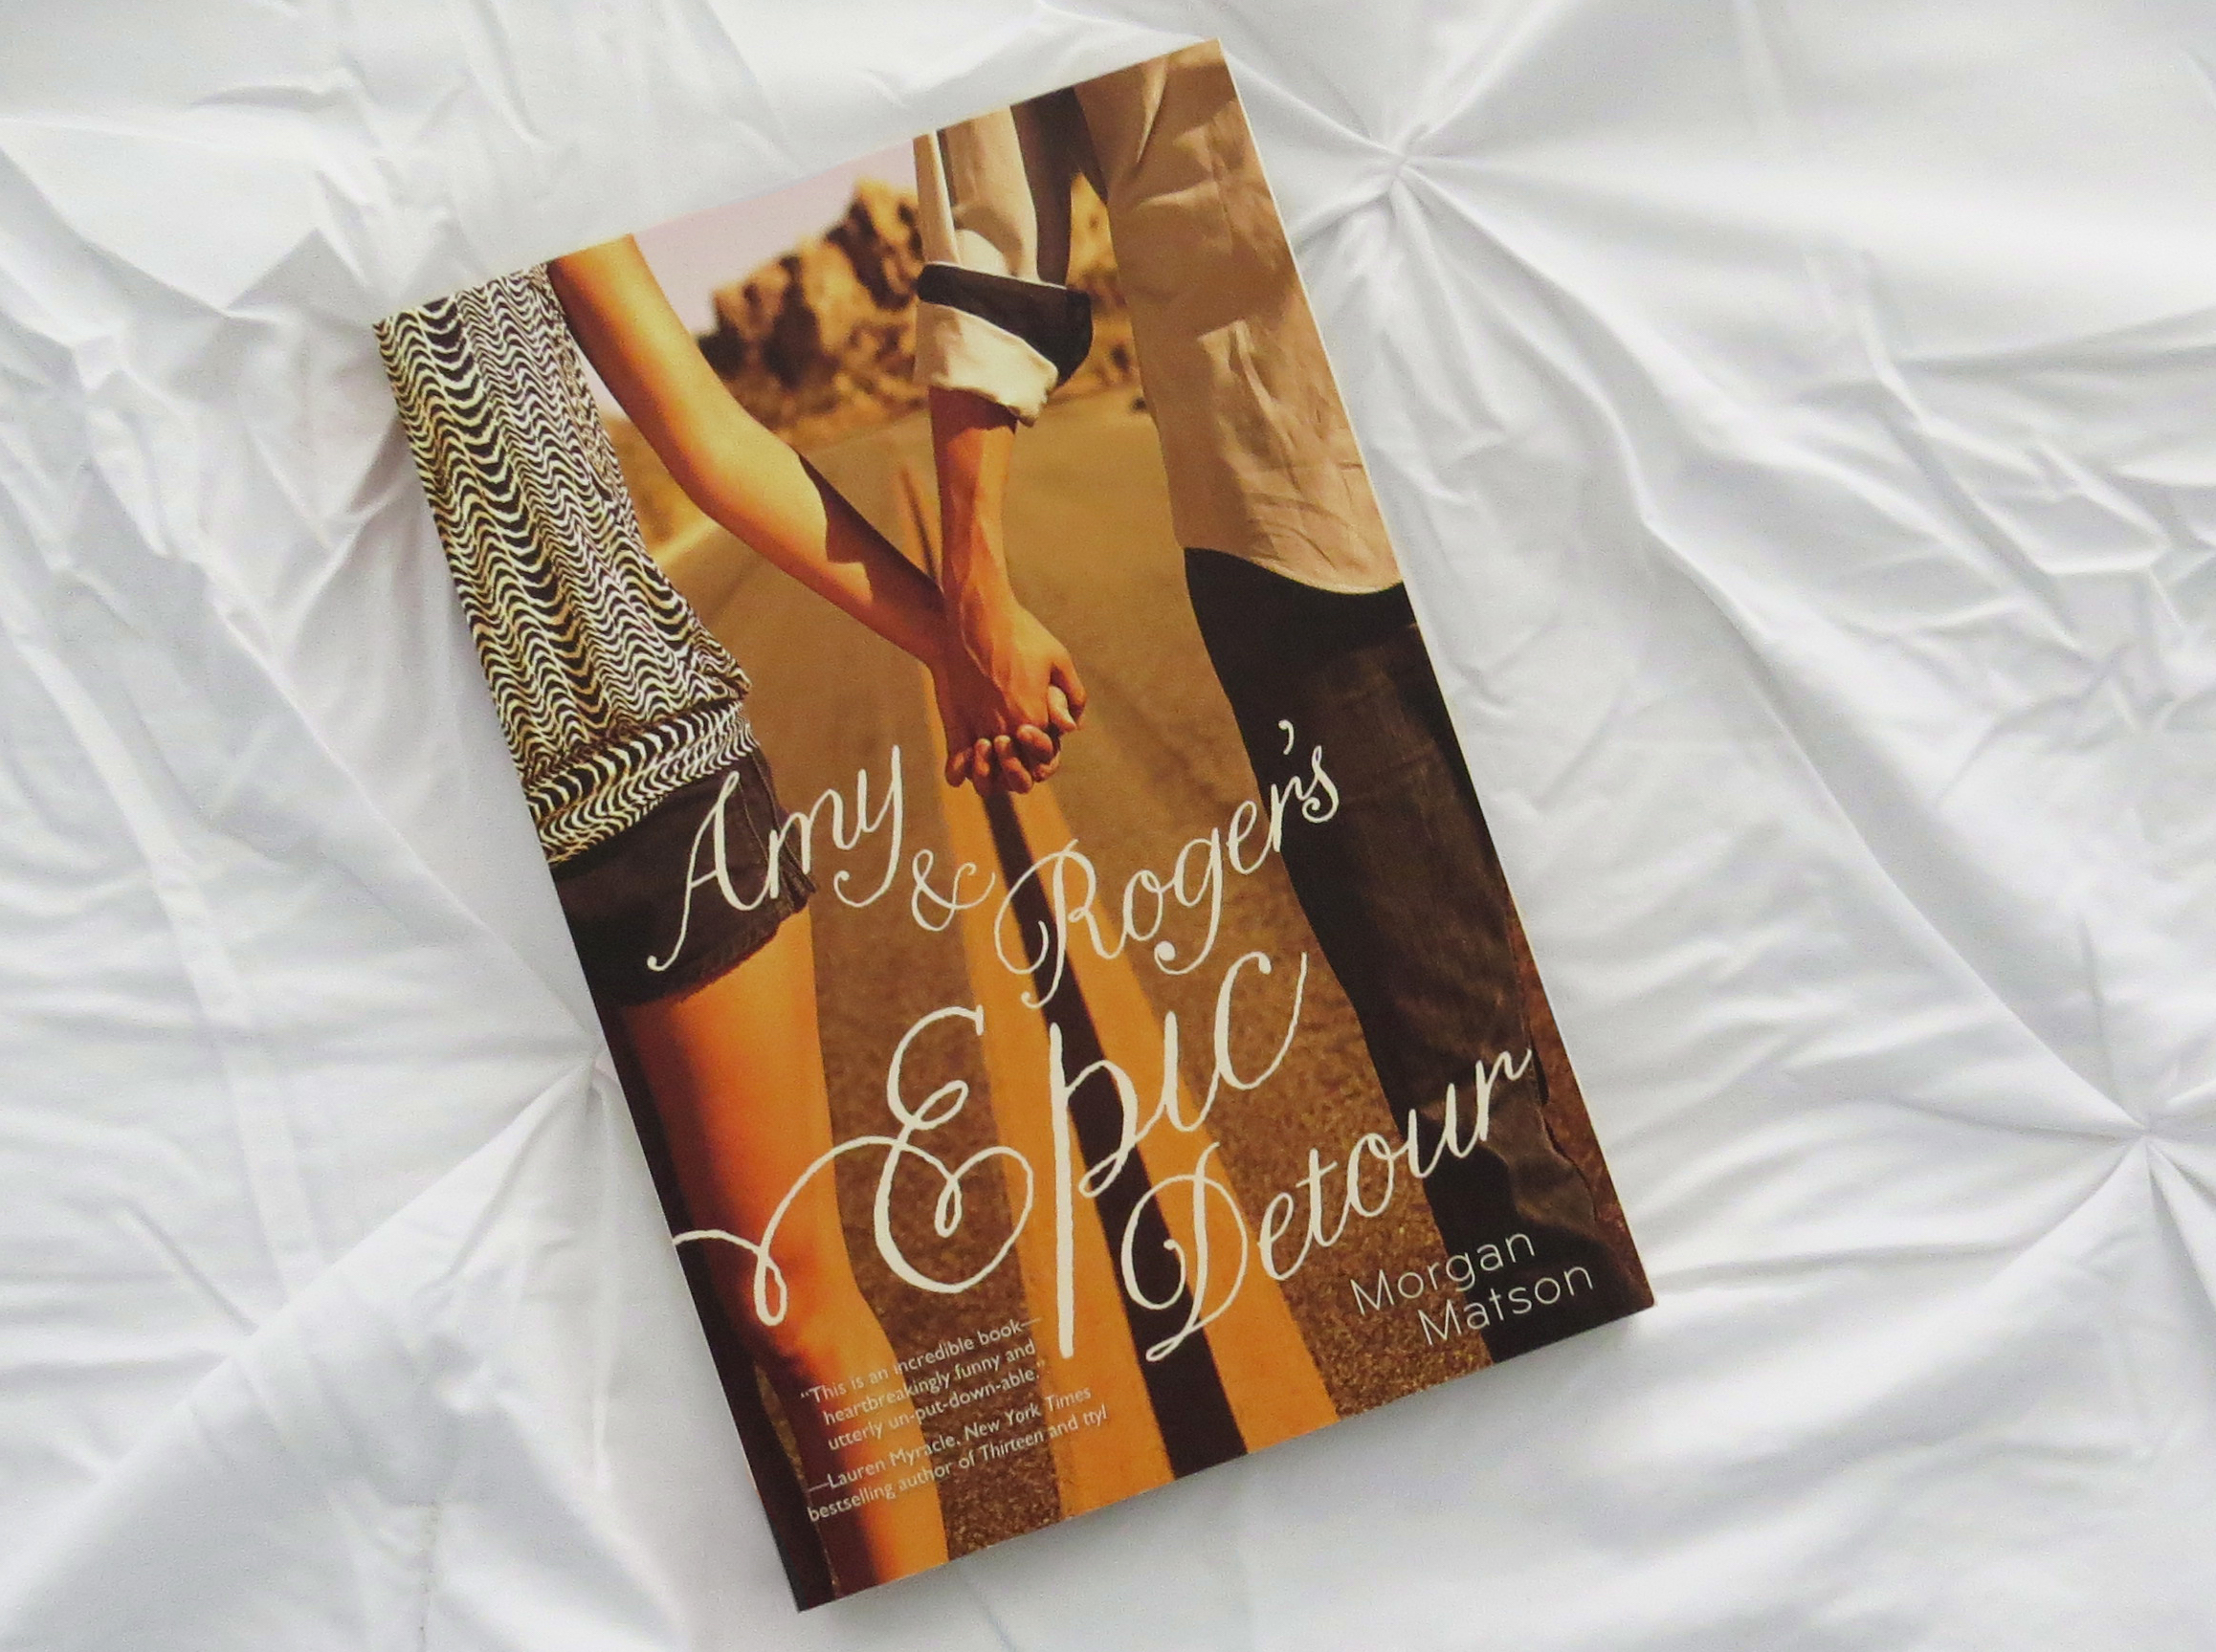 Amy and Roger's Epic Detour by Morgan Matson - The Contented Reader